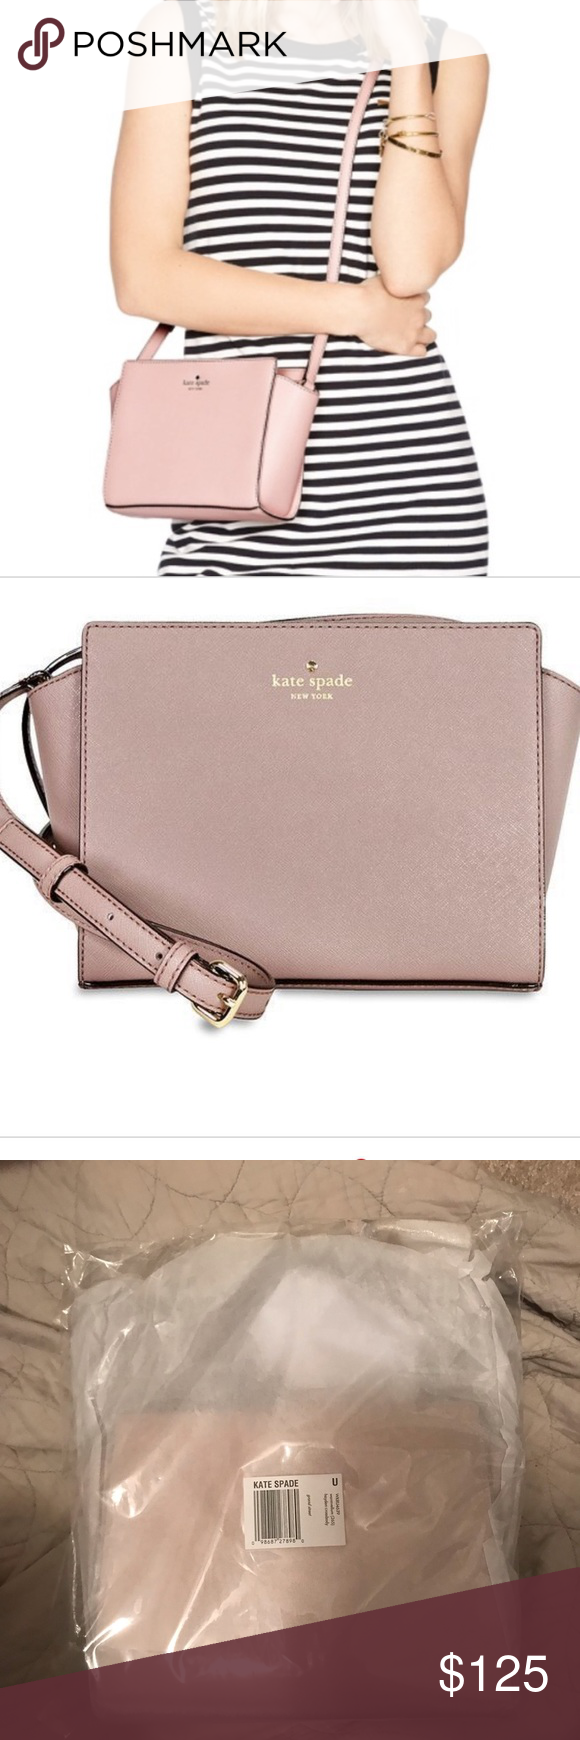 5914484da Kate Spade Crossbody GRAND STREET HAYDEN CROSSBODY, WARM VELLUM Comes in  original packaging, never